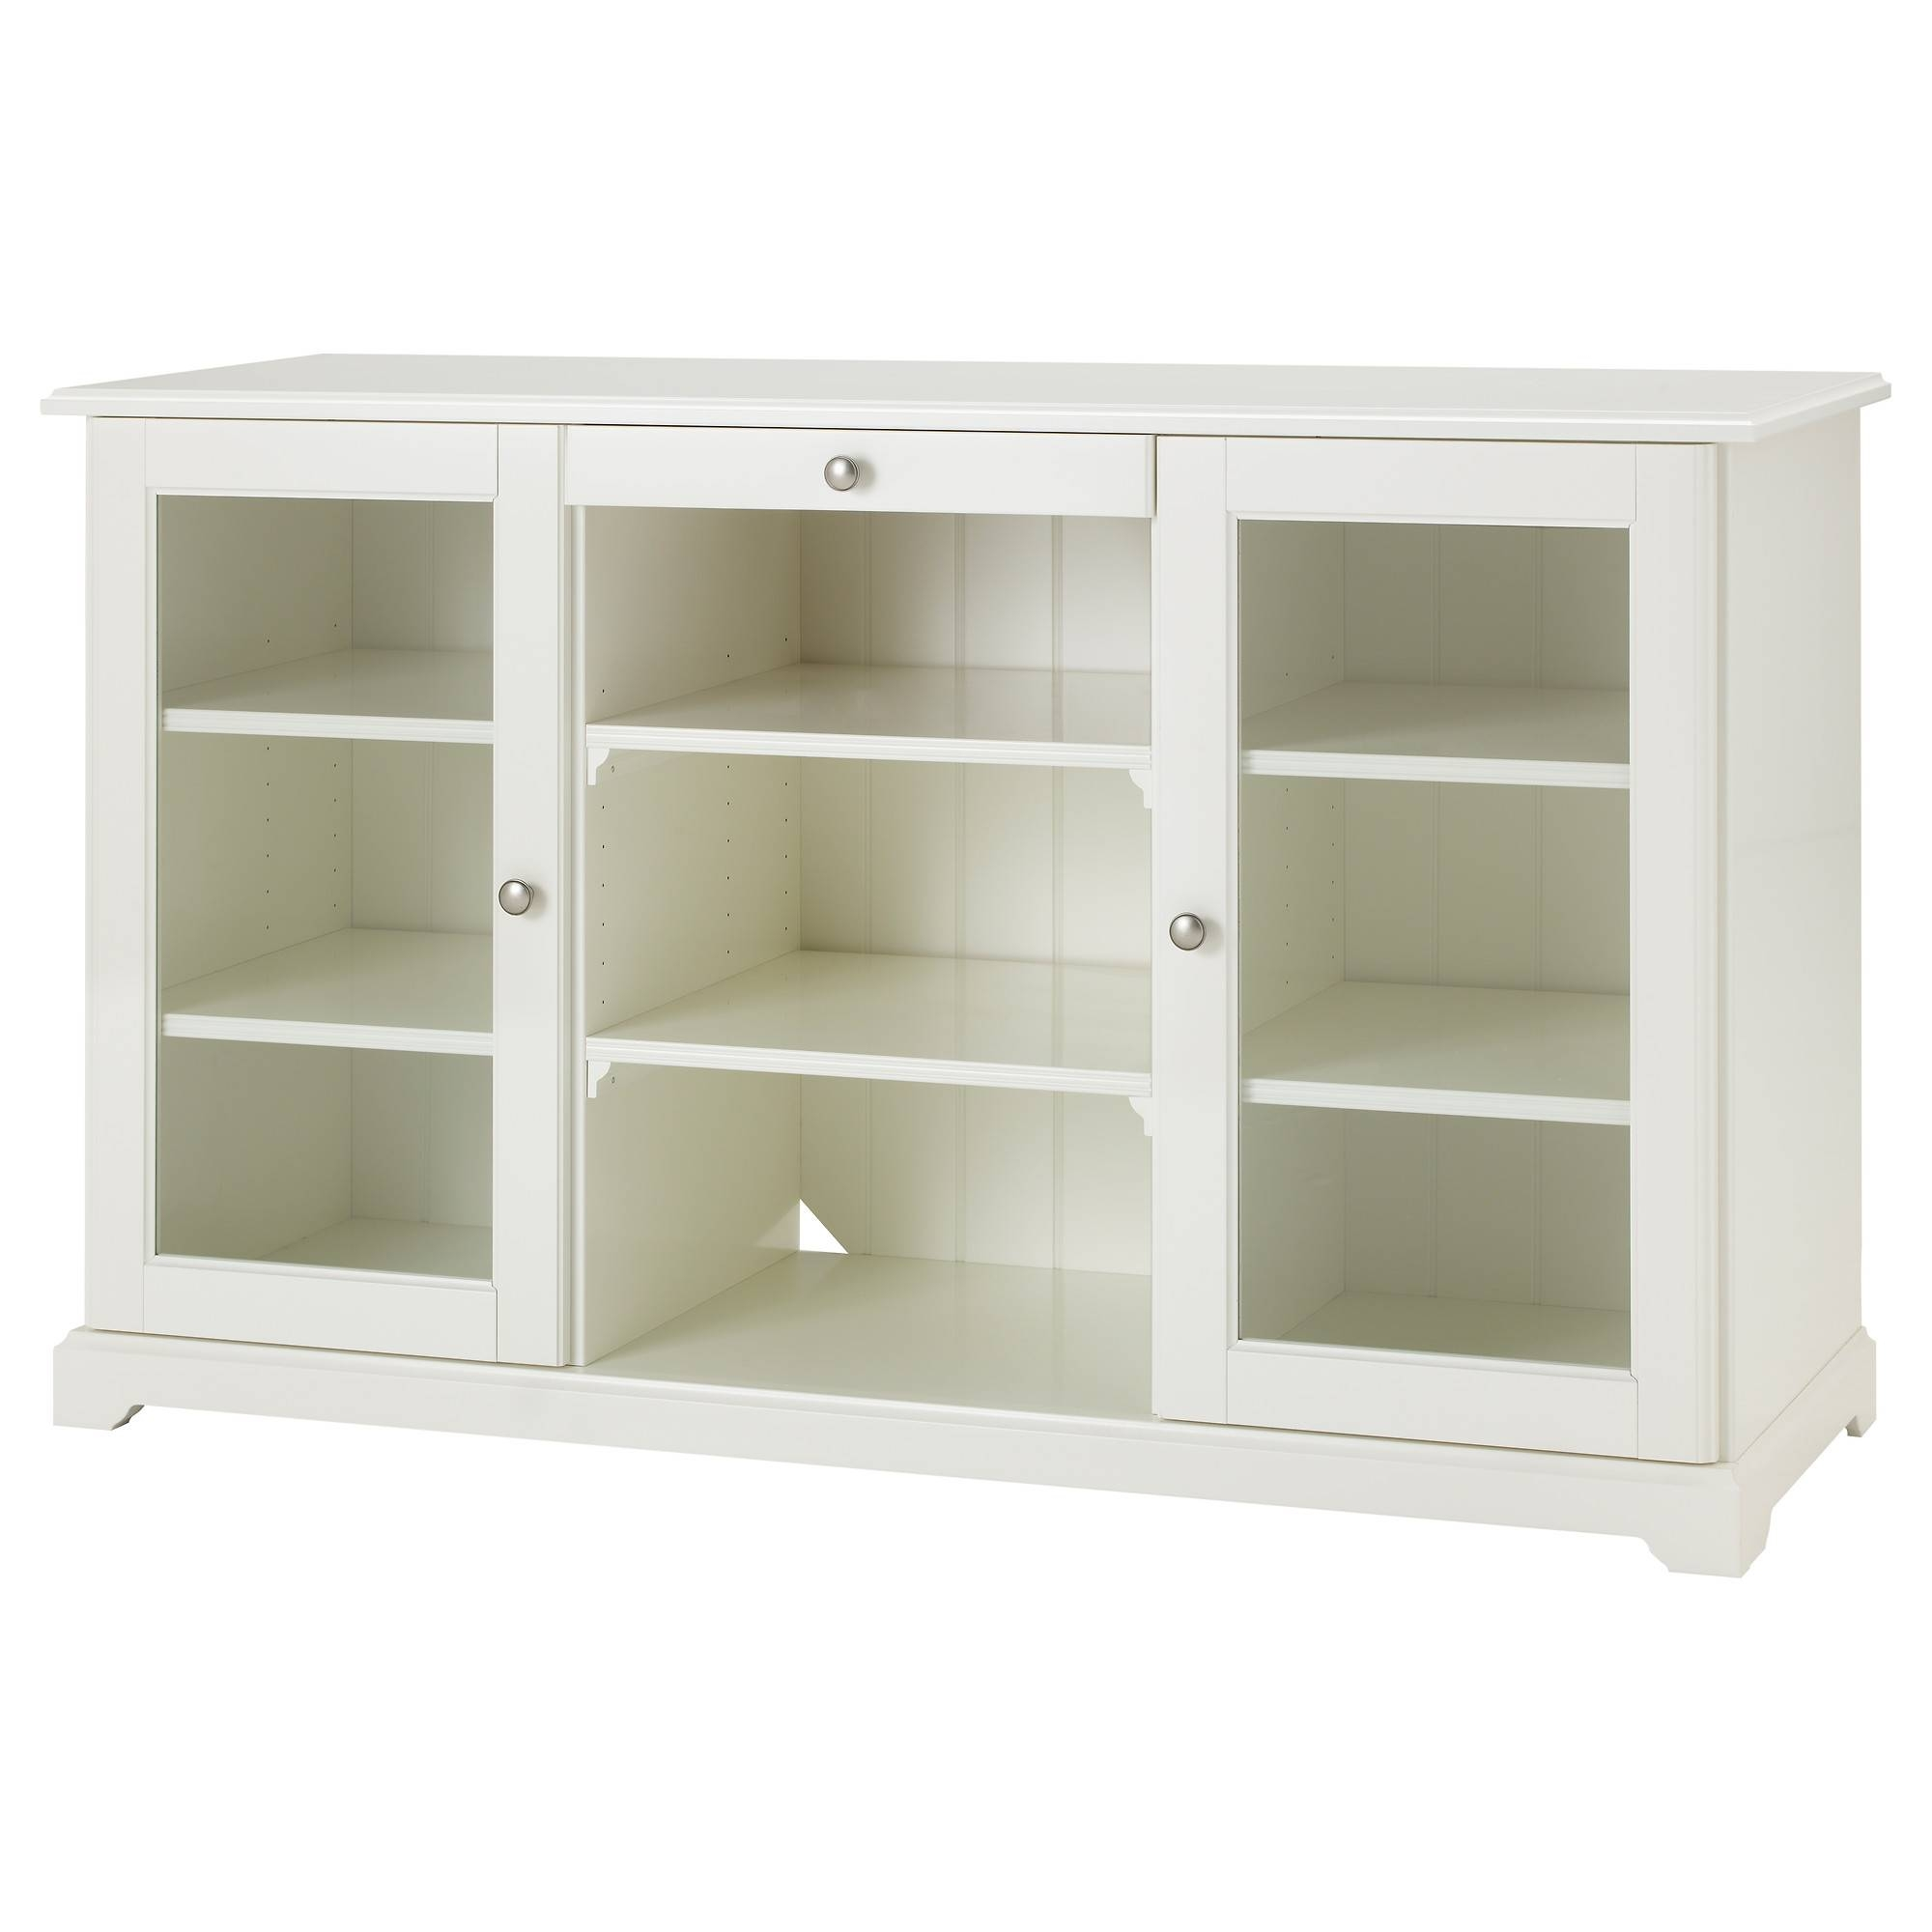 Liatorp Sideboard White 145X87 Cm – Ikea With Large White Sideboards (#8 of 15)